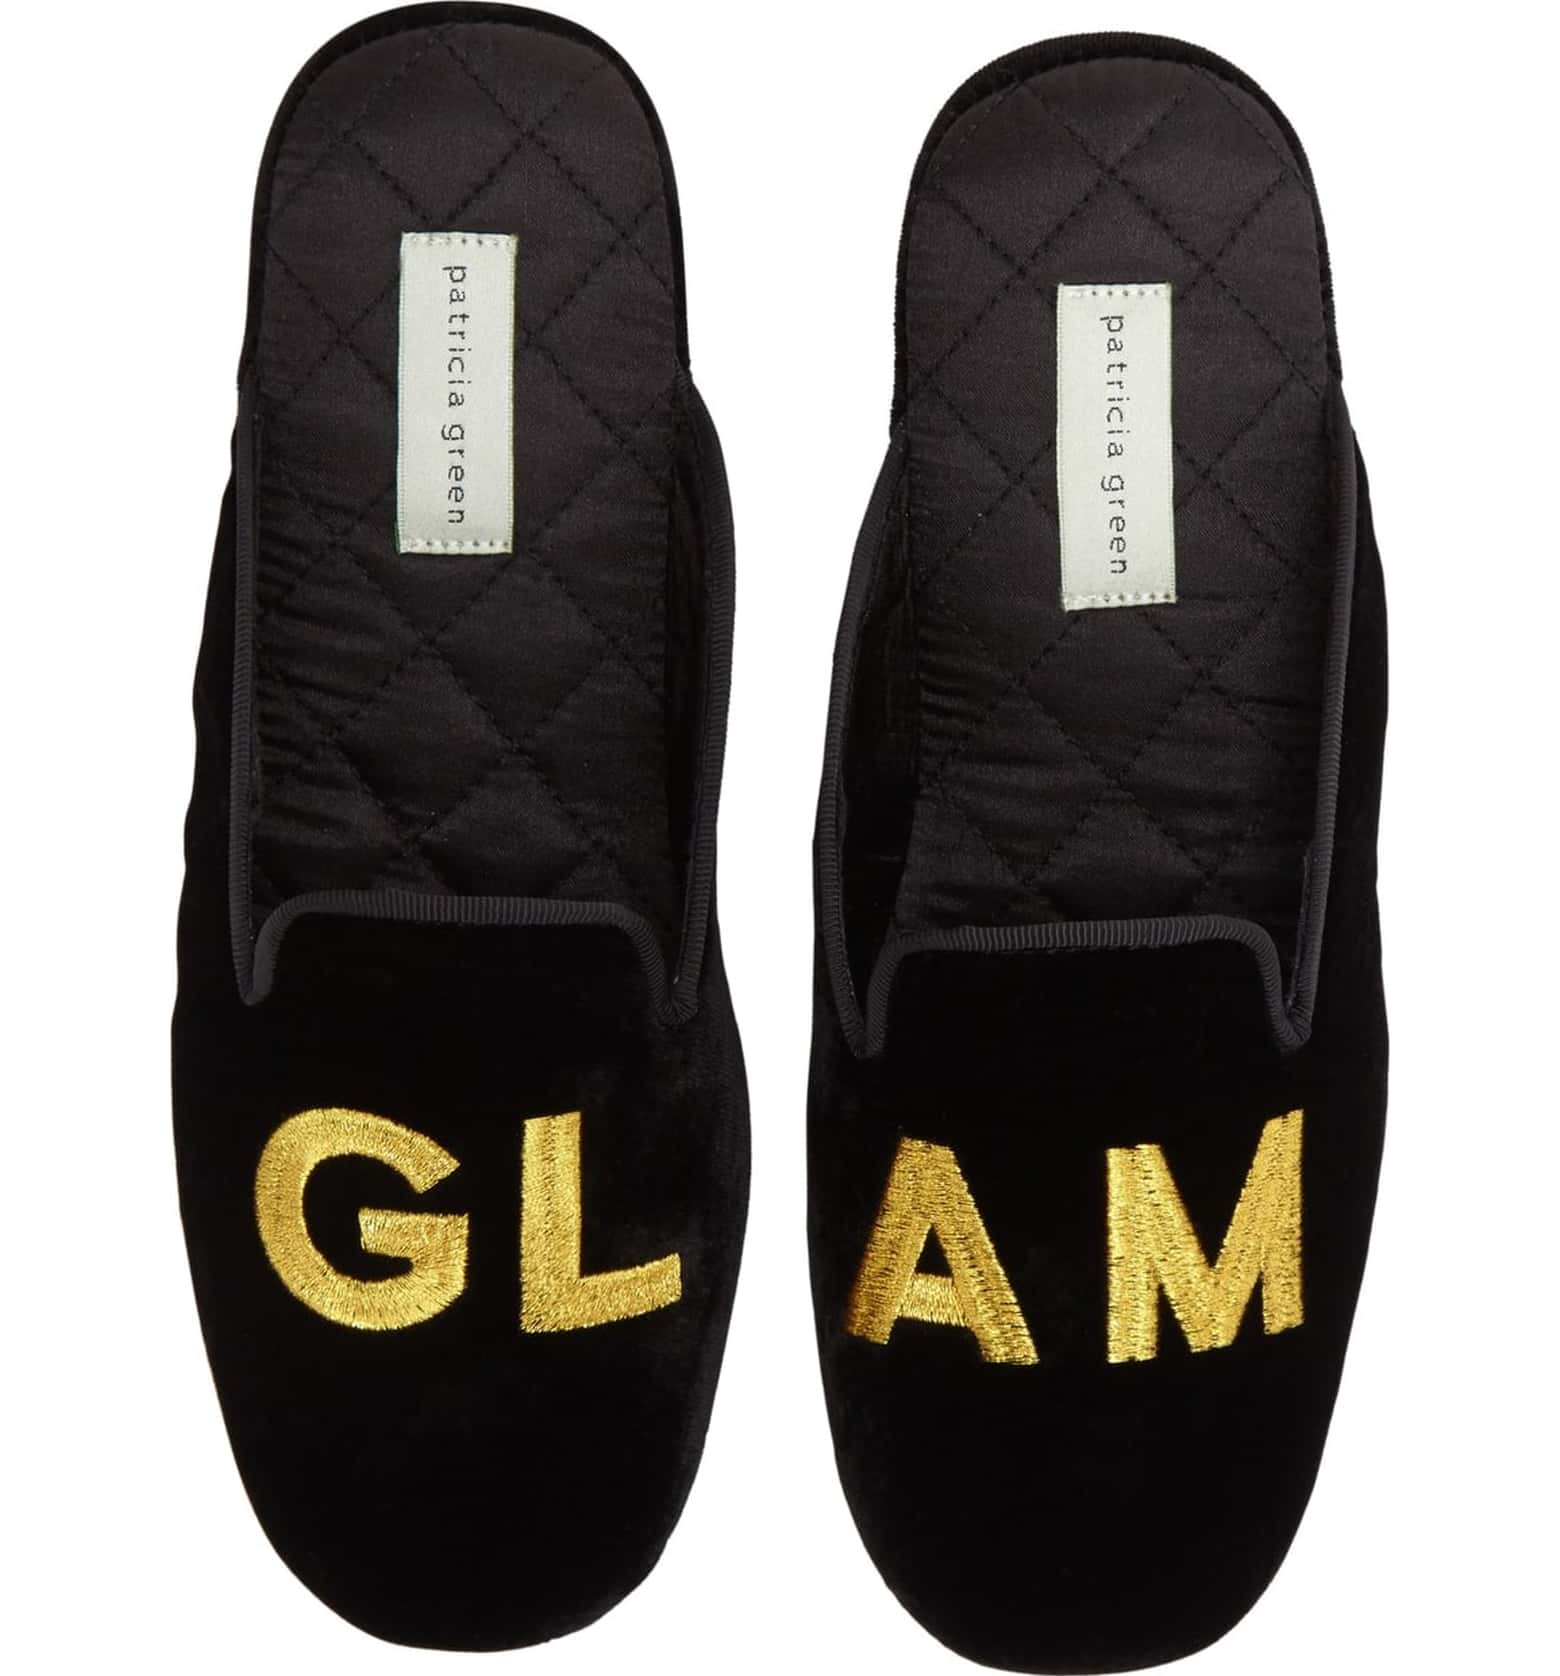 Patricia Green GLAM Slippers  $72